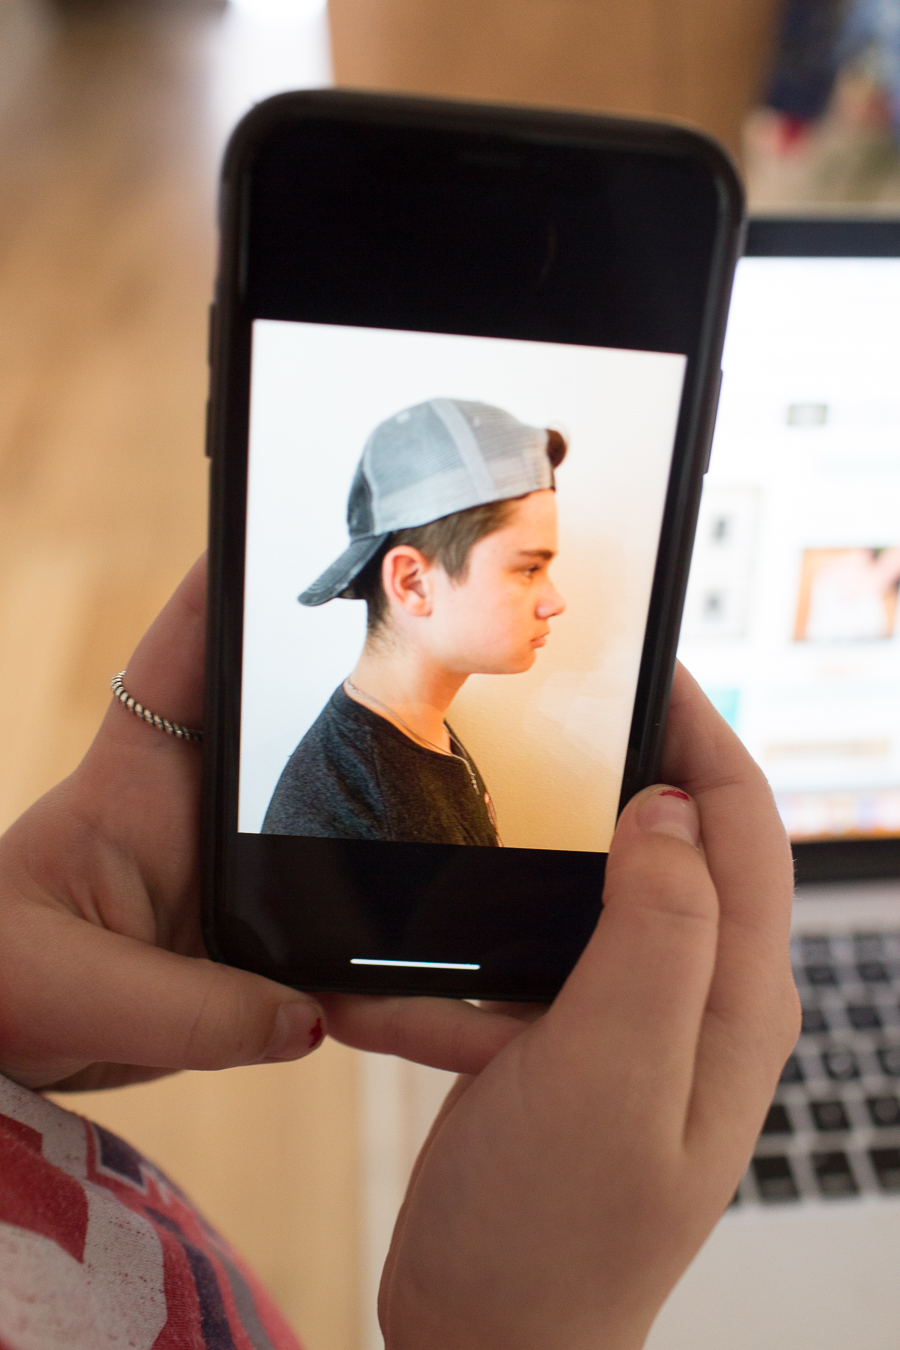 holding up an image on an iphone of a teenage boy profile